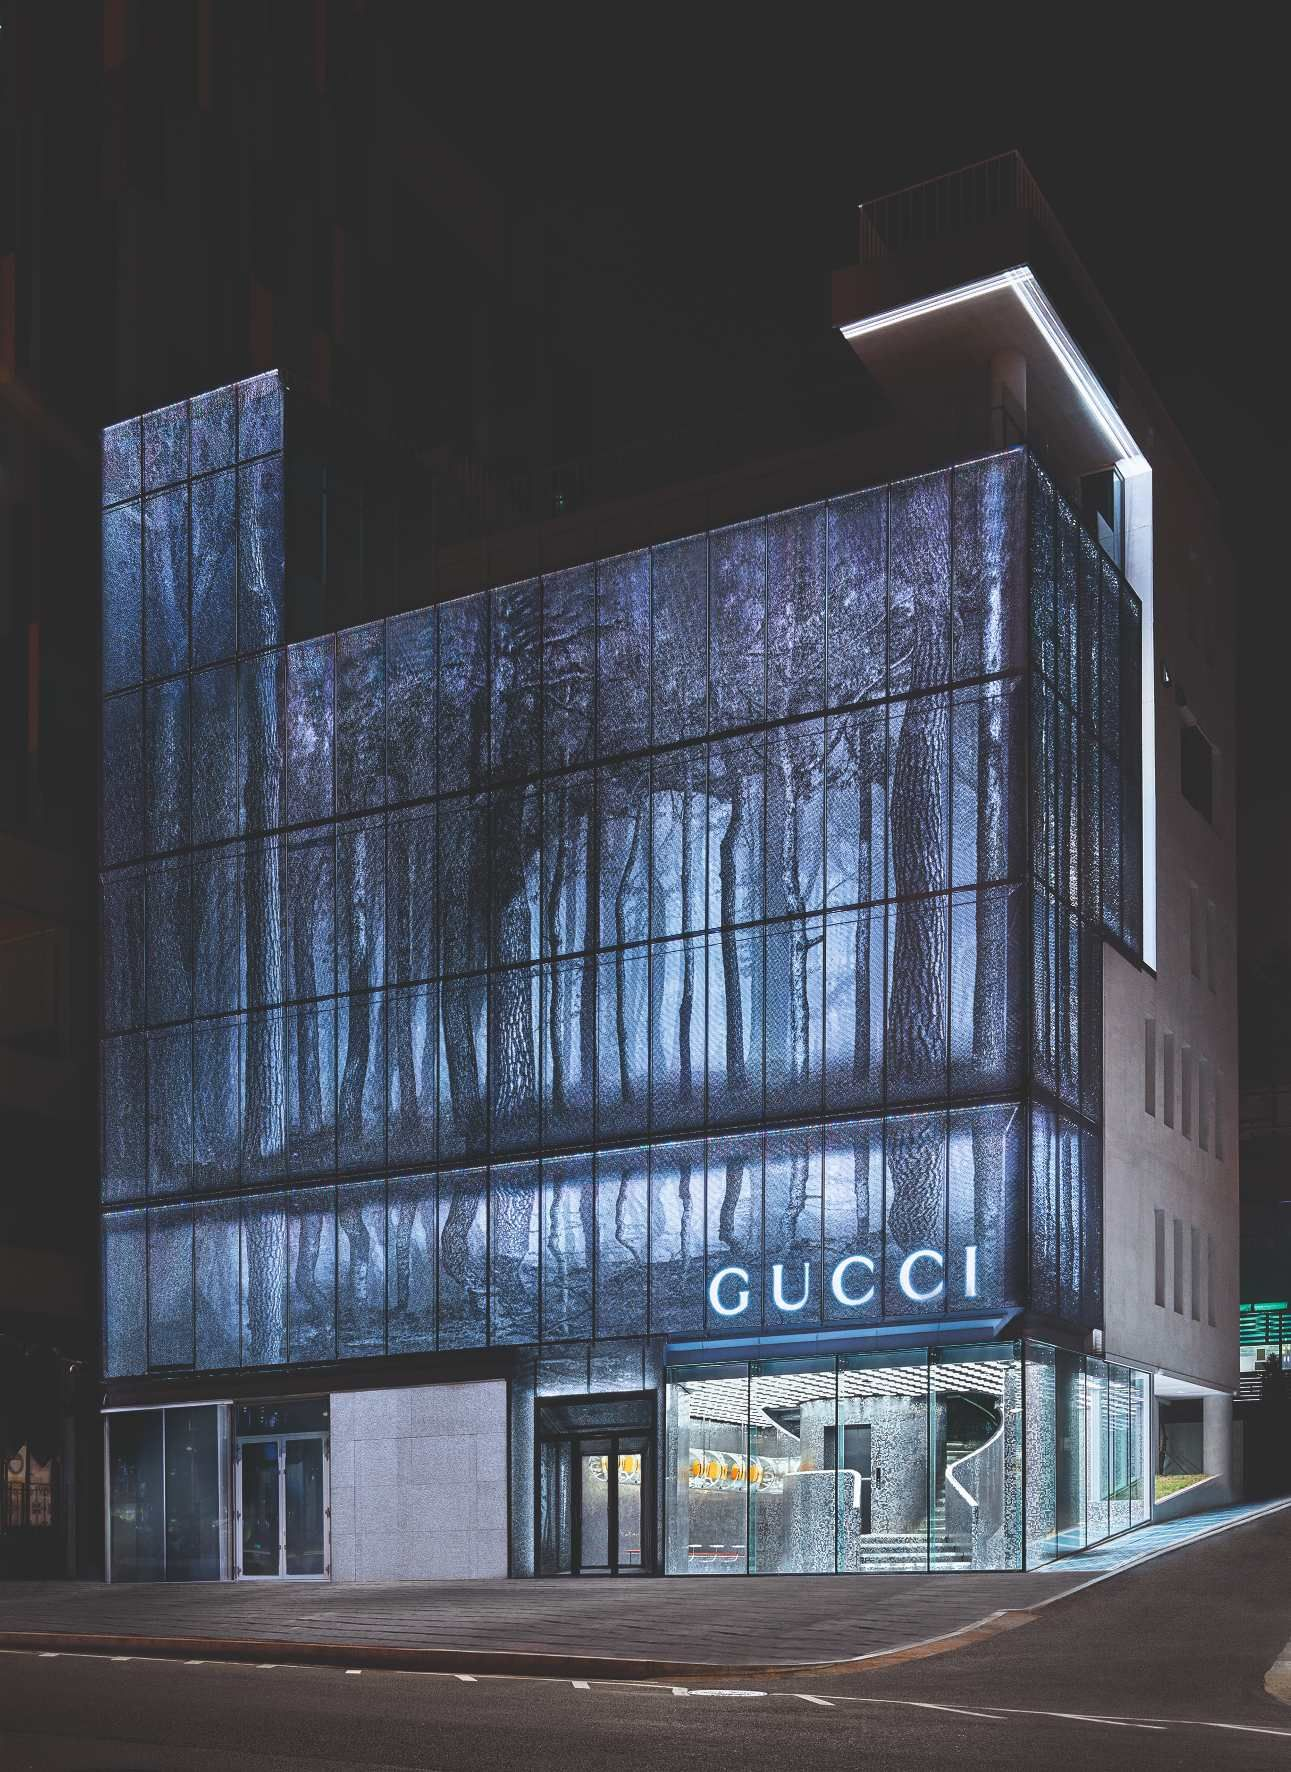 Gucci opens its second flagship store in Seoul